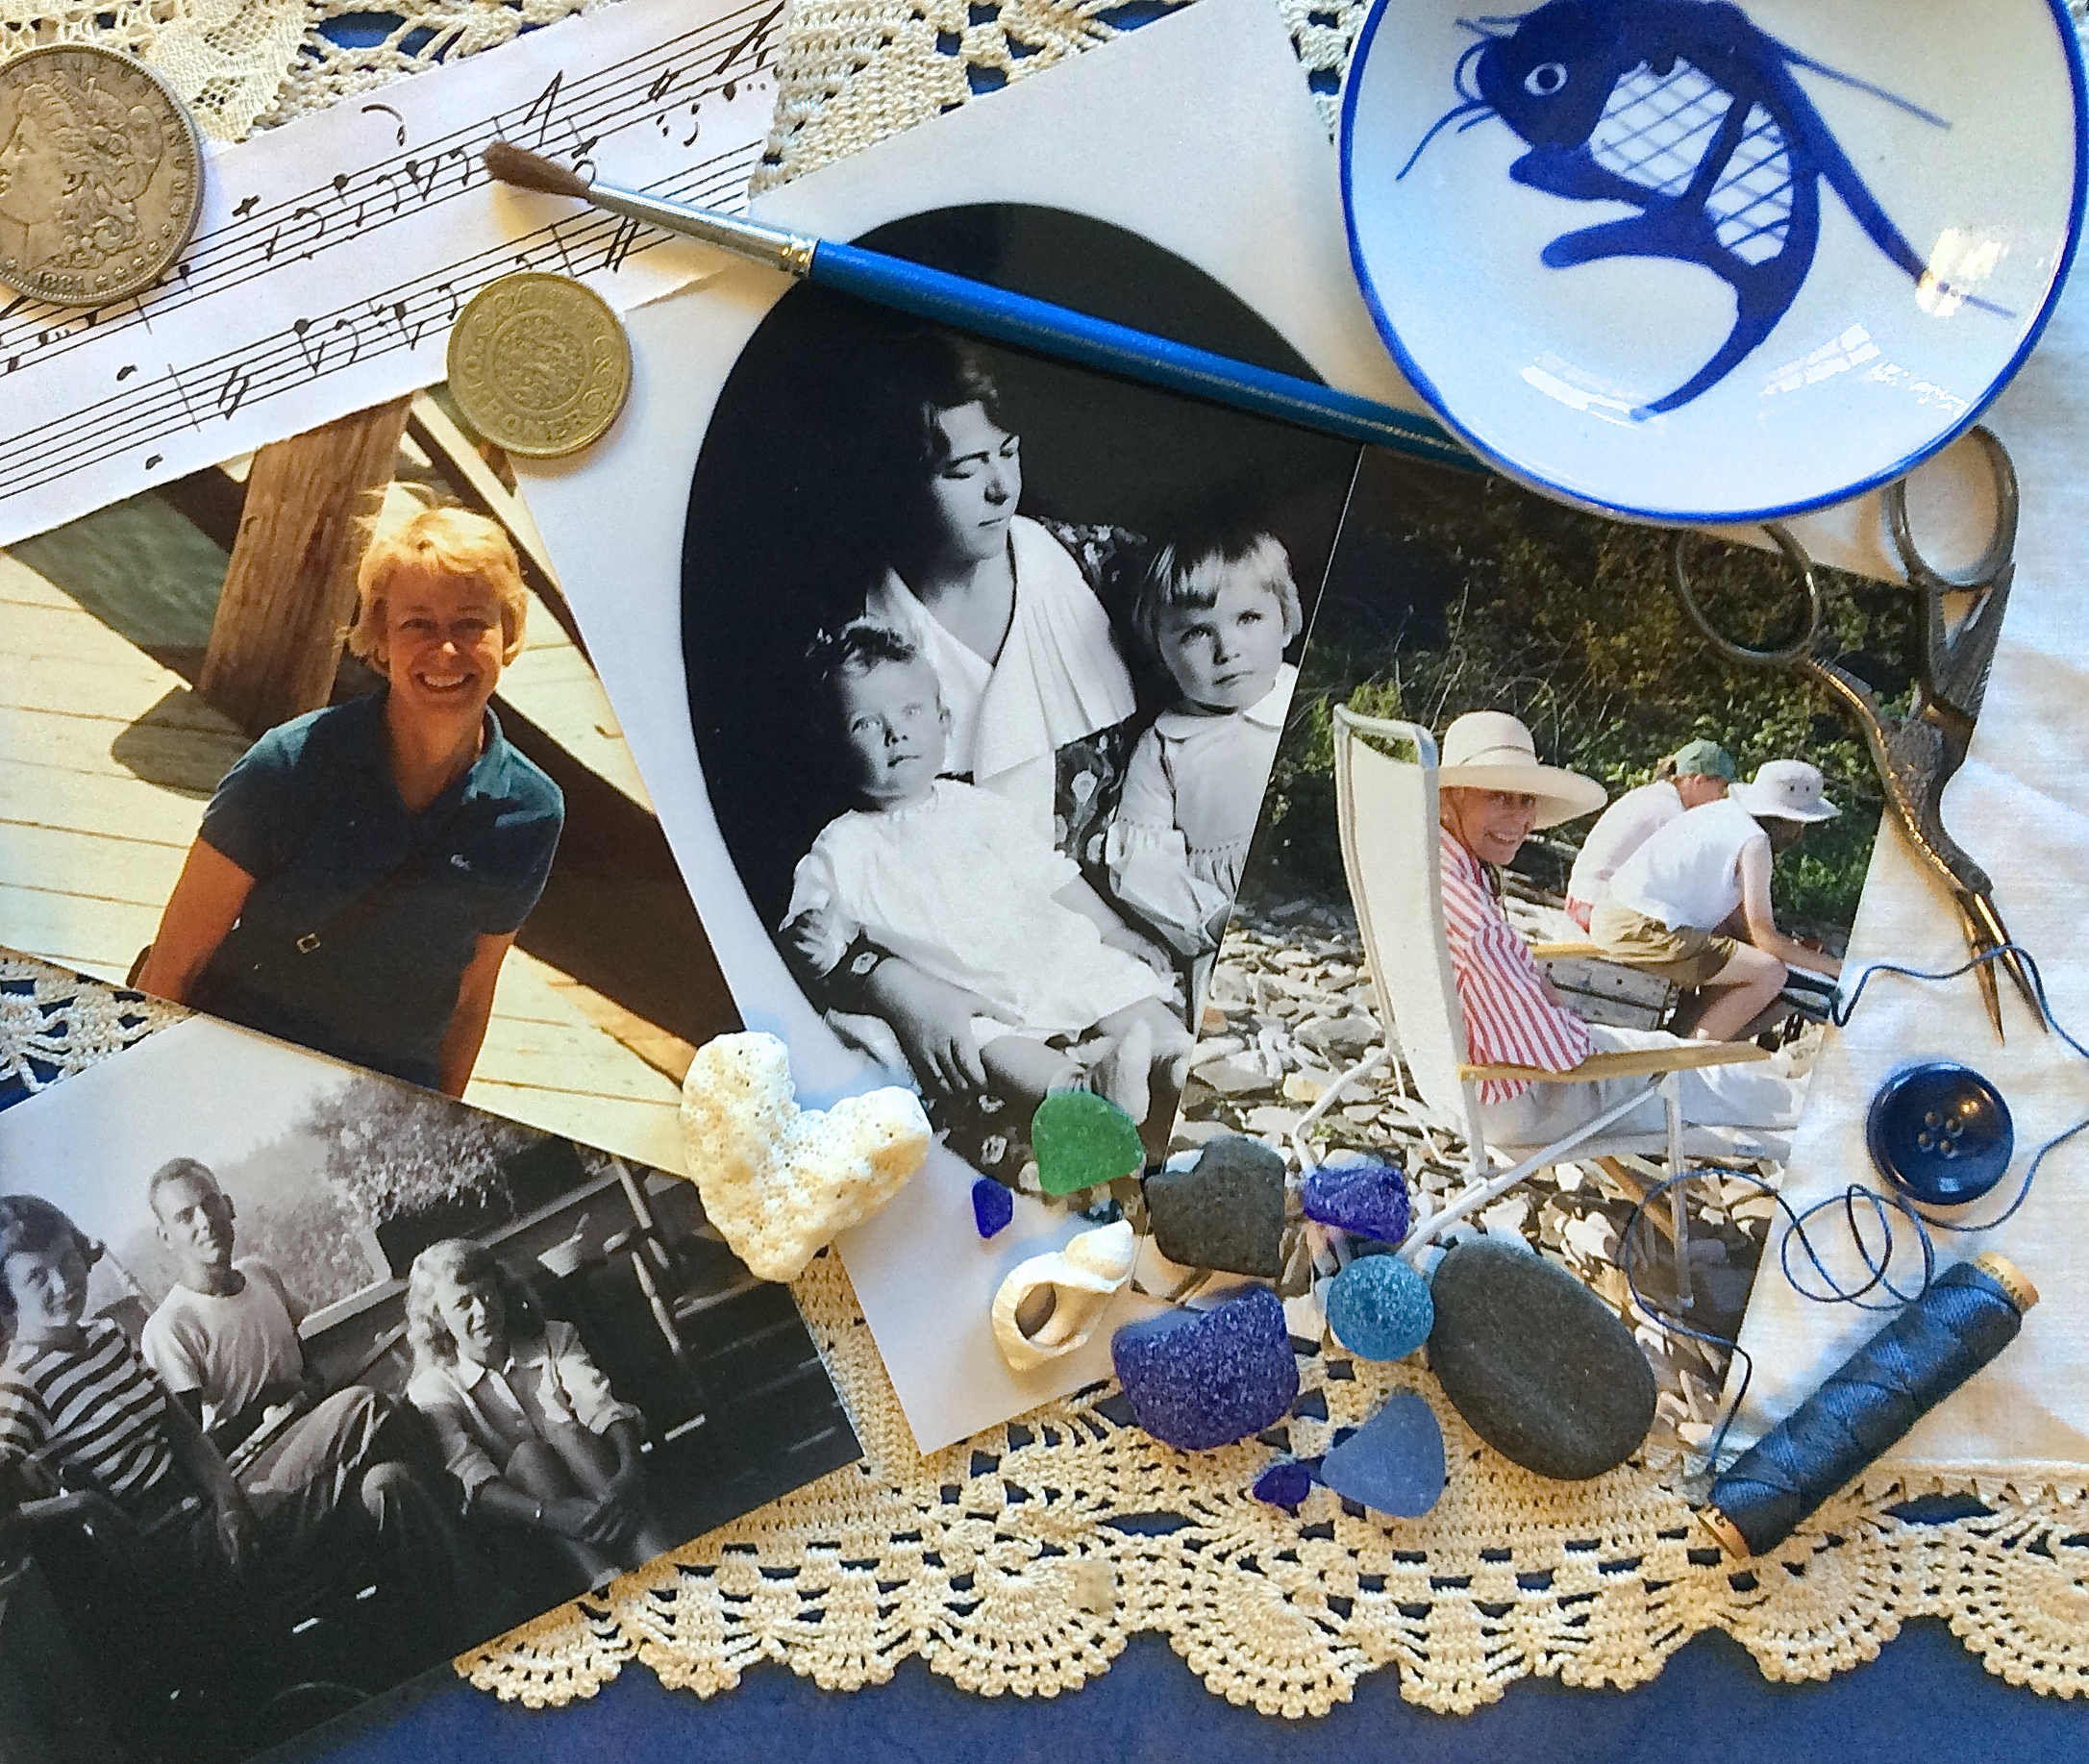 Collage of old photos and memorabilia